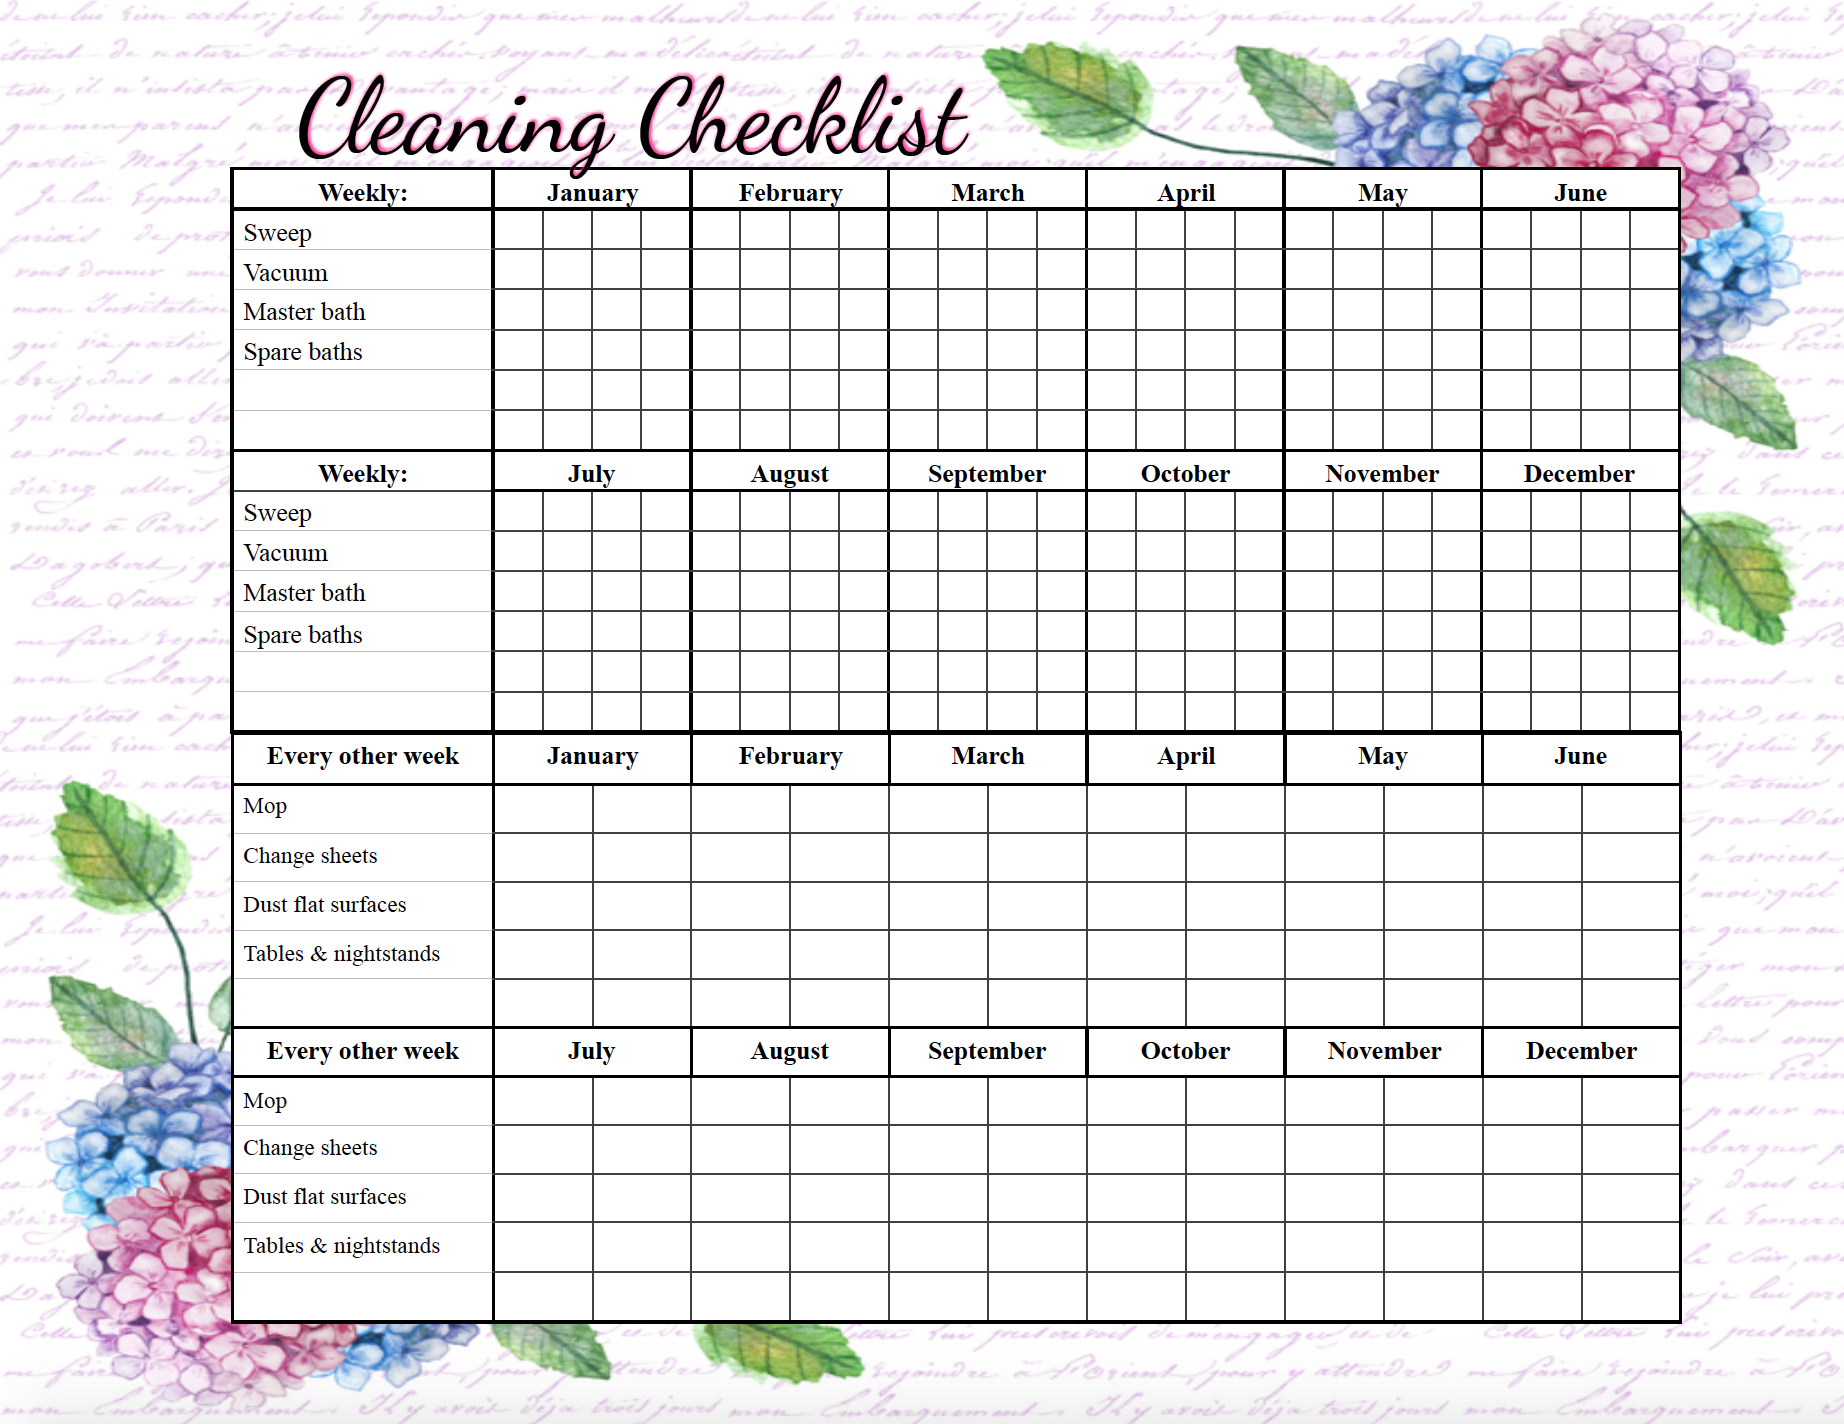 Pre-filled out cleaning checklist. Free printable cleaning checklists. Pre-filled and blanks. Regular & deep-cleaning. Great for kids' chores!